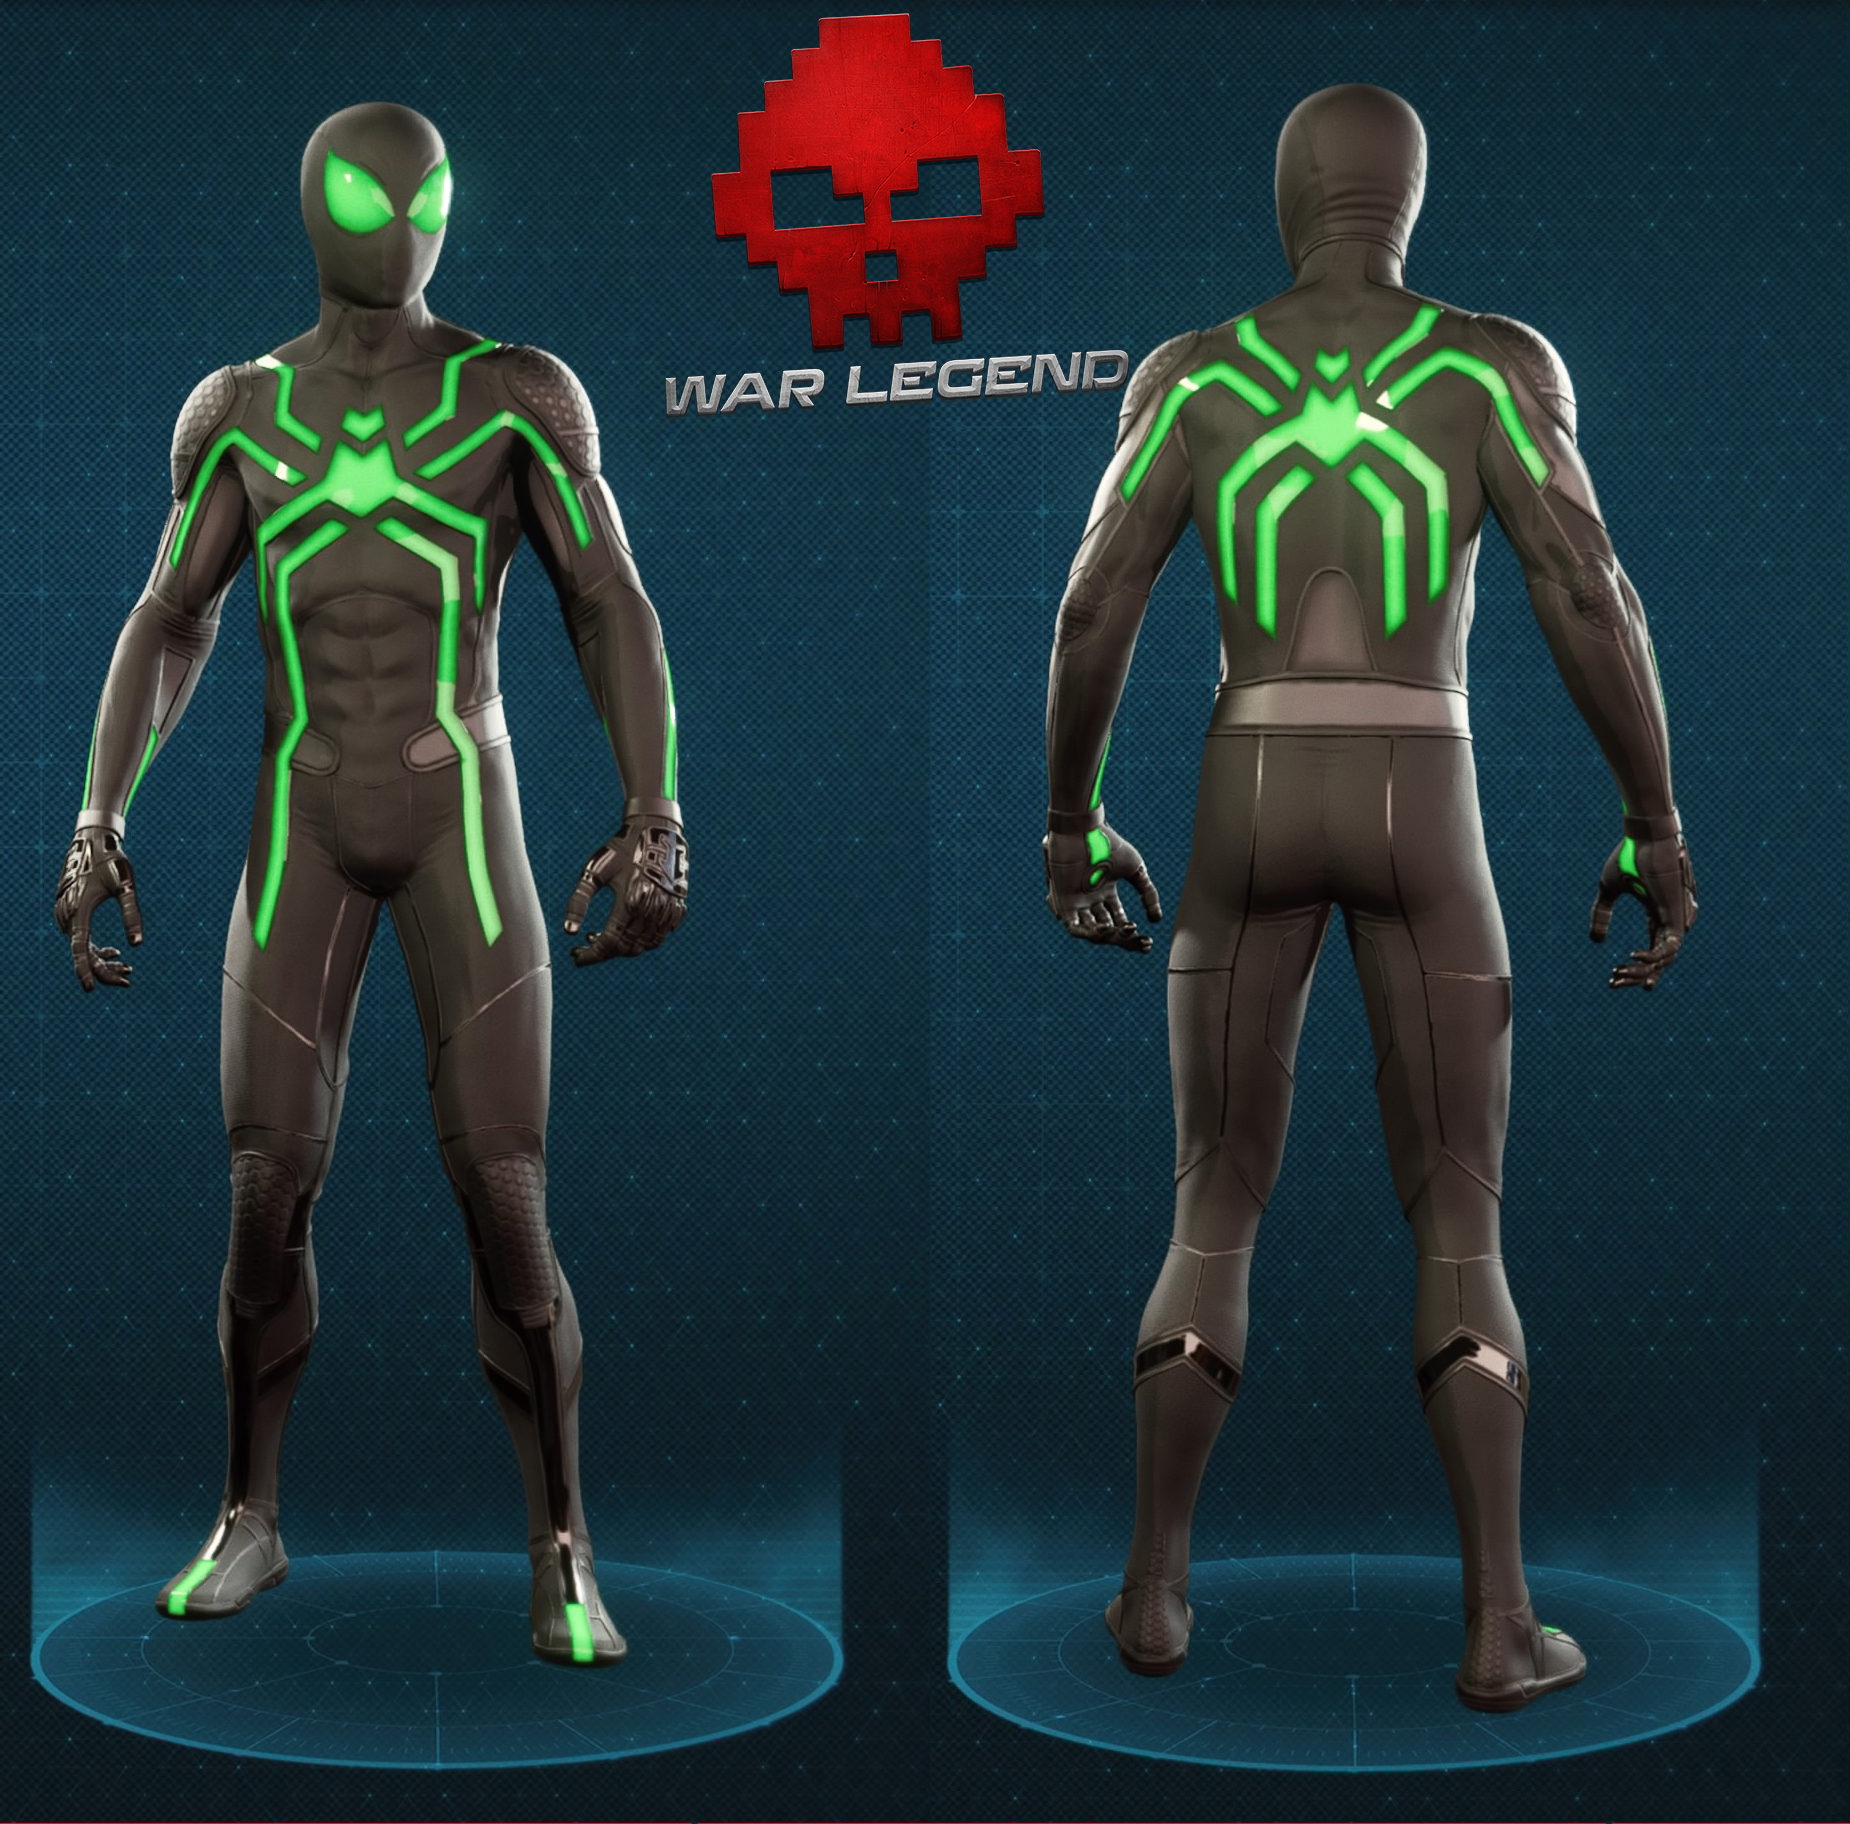 Guide spider-man costume furtif